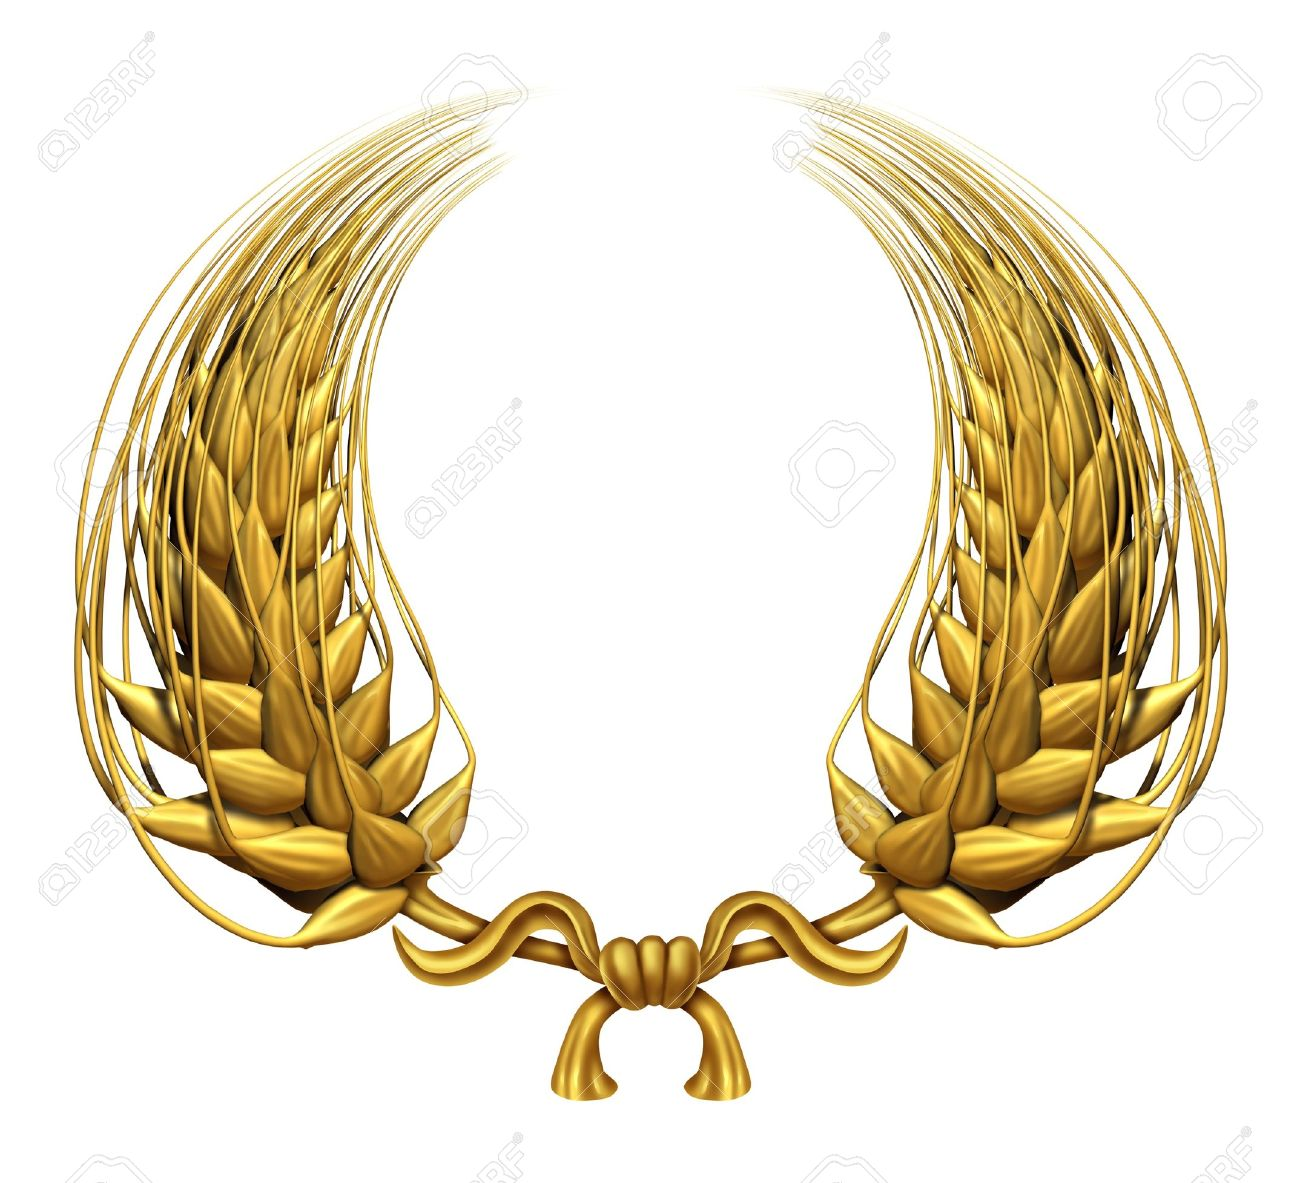 Gold laurel wreath of golden wheat representing an award and success of winning and a certified  achievement as a decorative element made of twisted 3d wheat grass and harvested food grain as a symbol of health. Stock Photo - 11718581